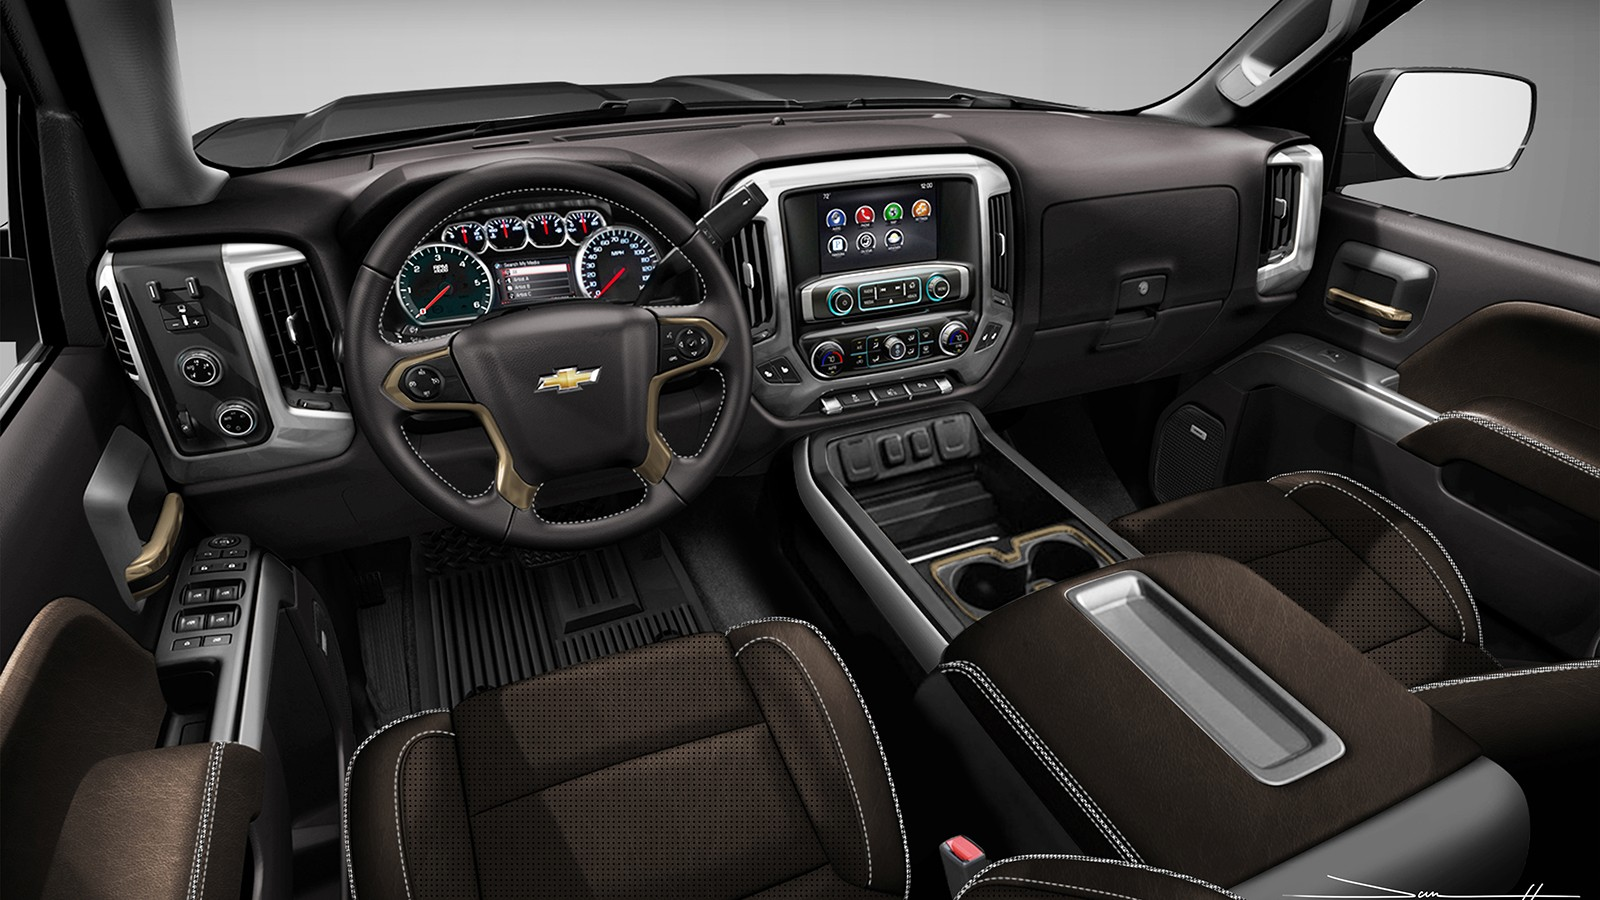 With premium leather interior accents and unique appearance enha